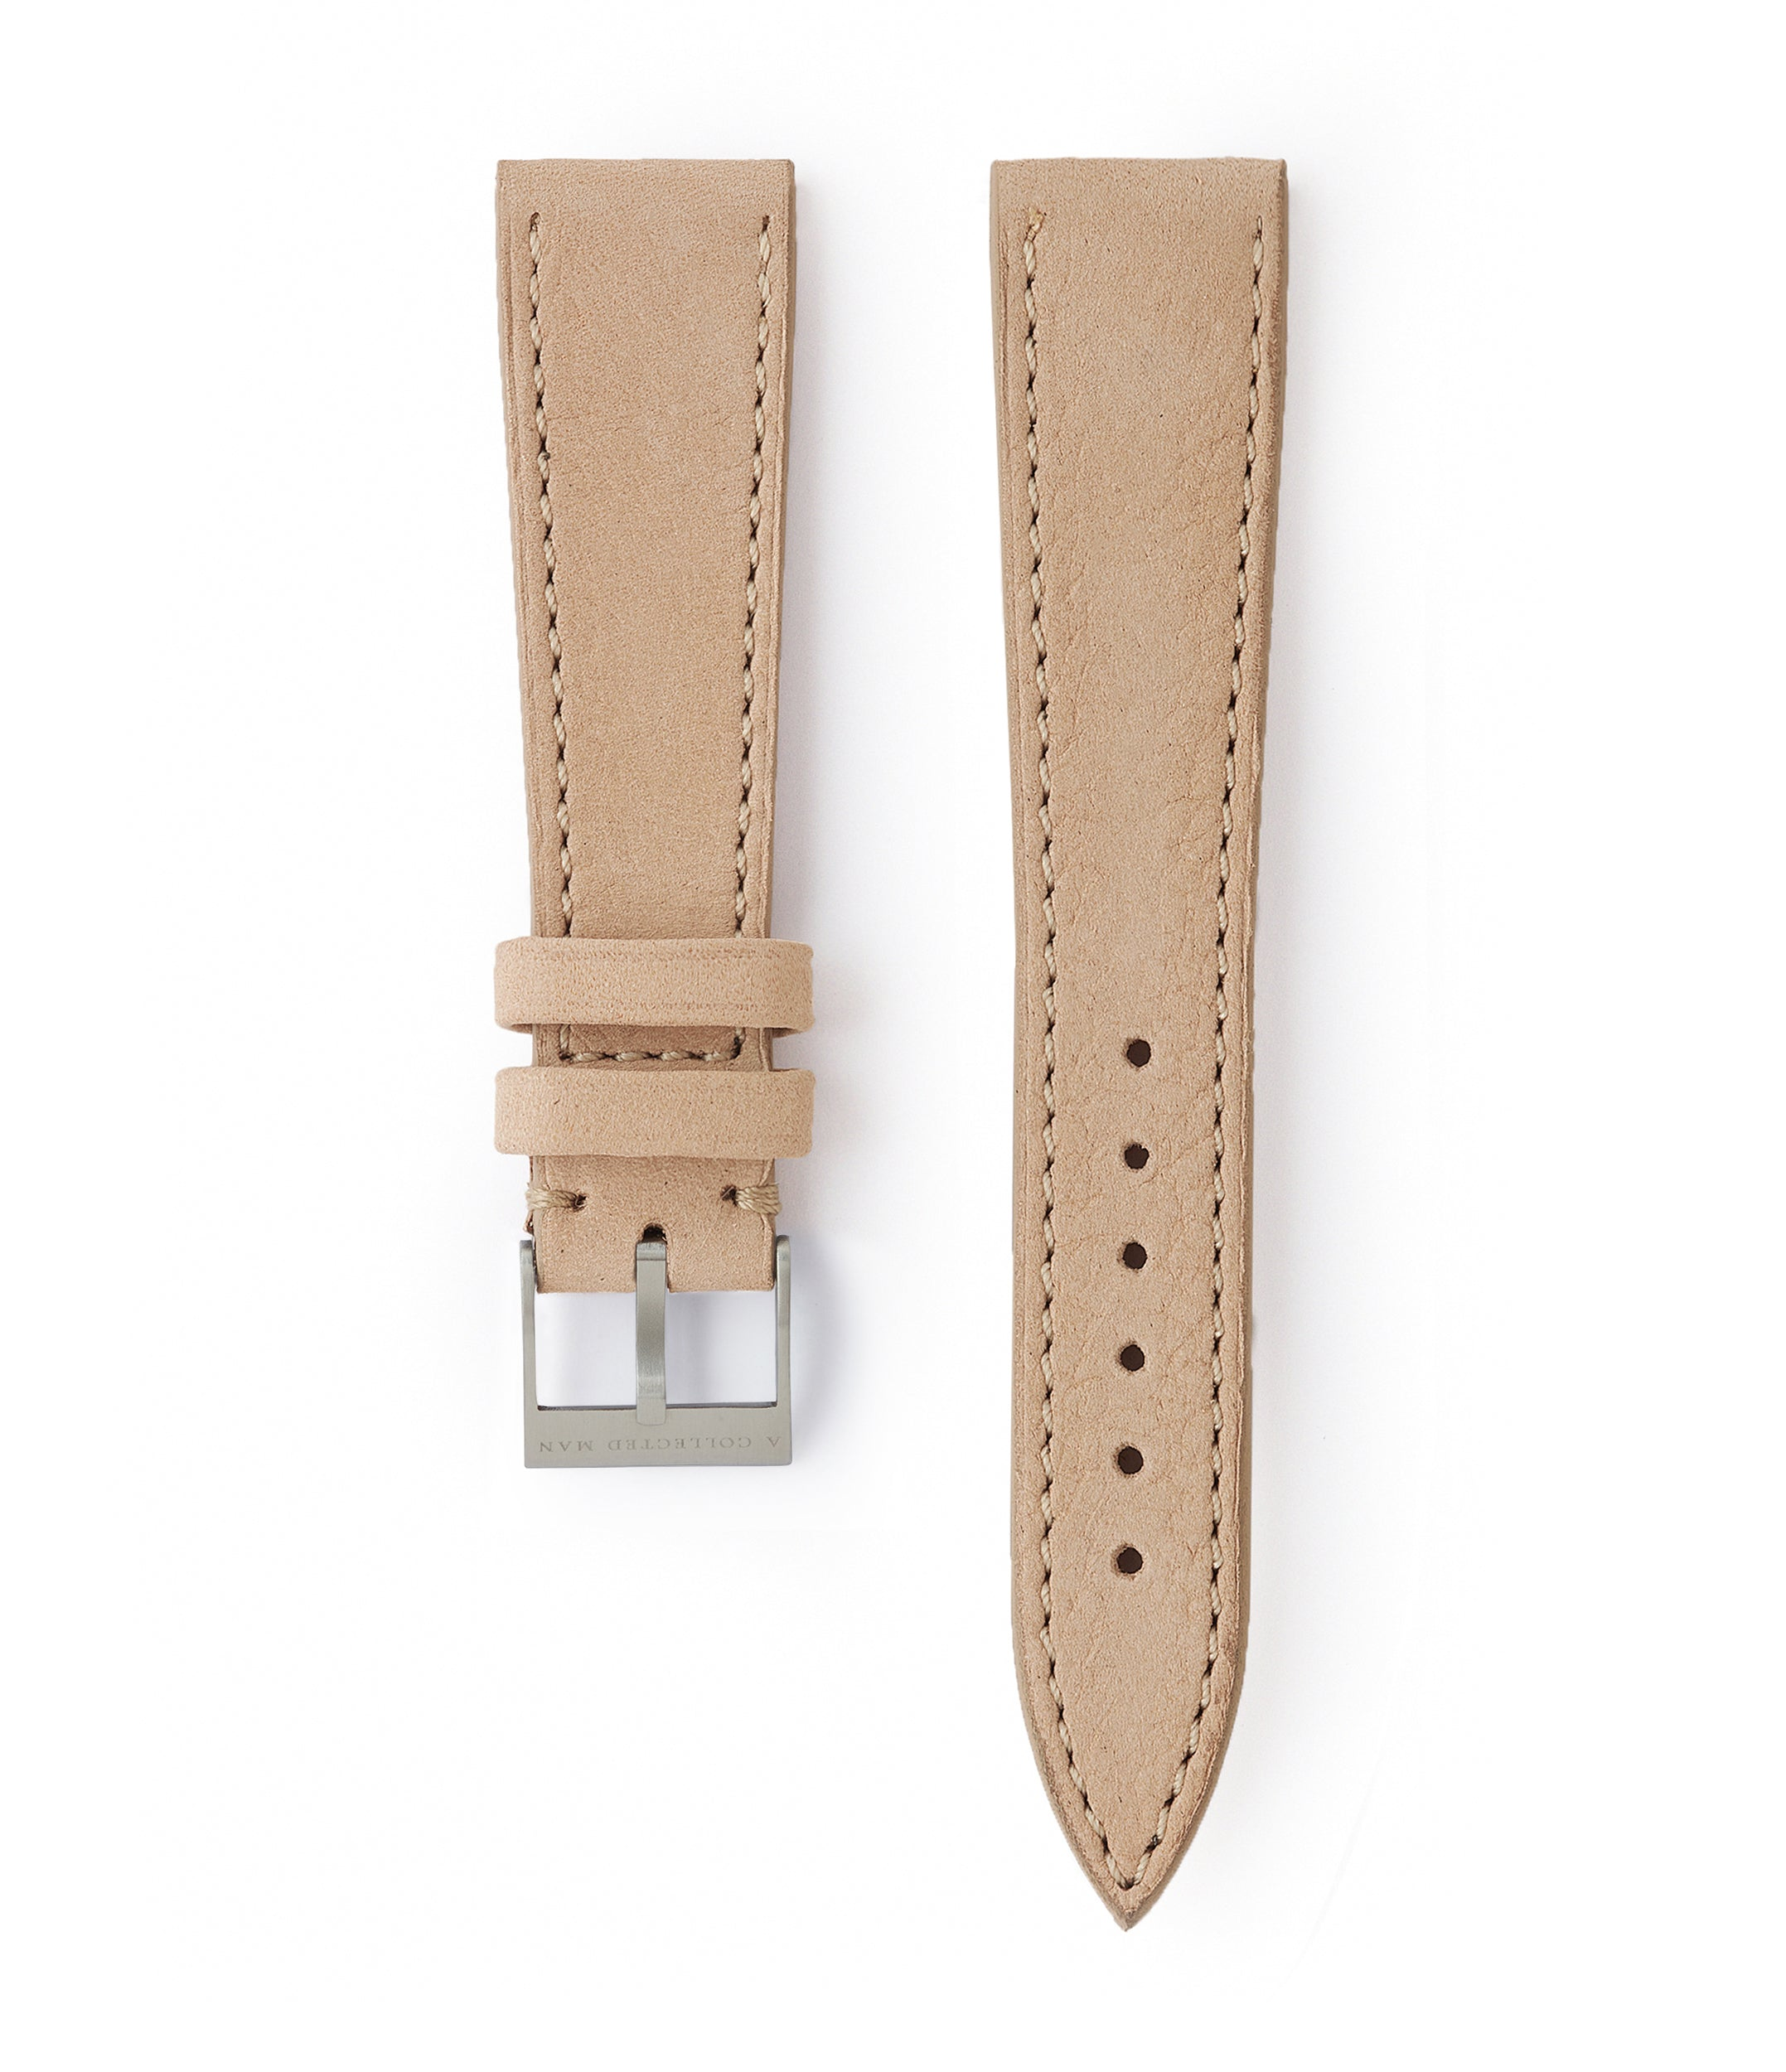 buy nude nubuck leather watch strap Istanbul Molequin for sale order online at A Collected Man London